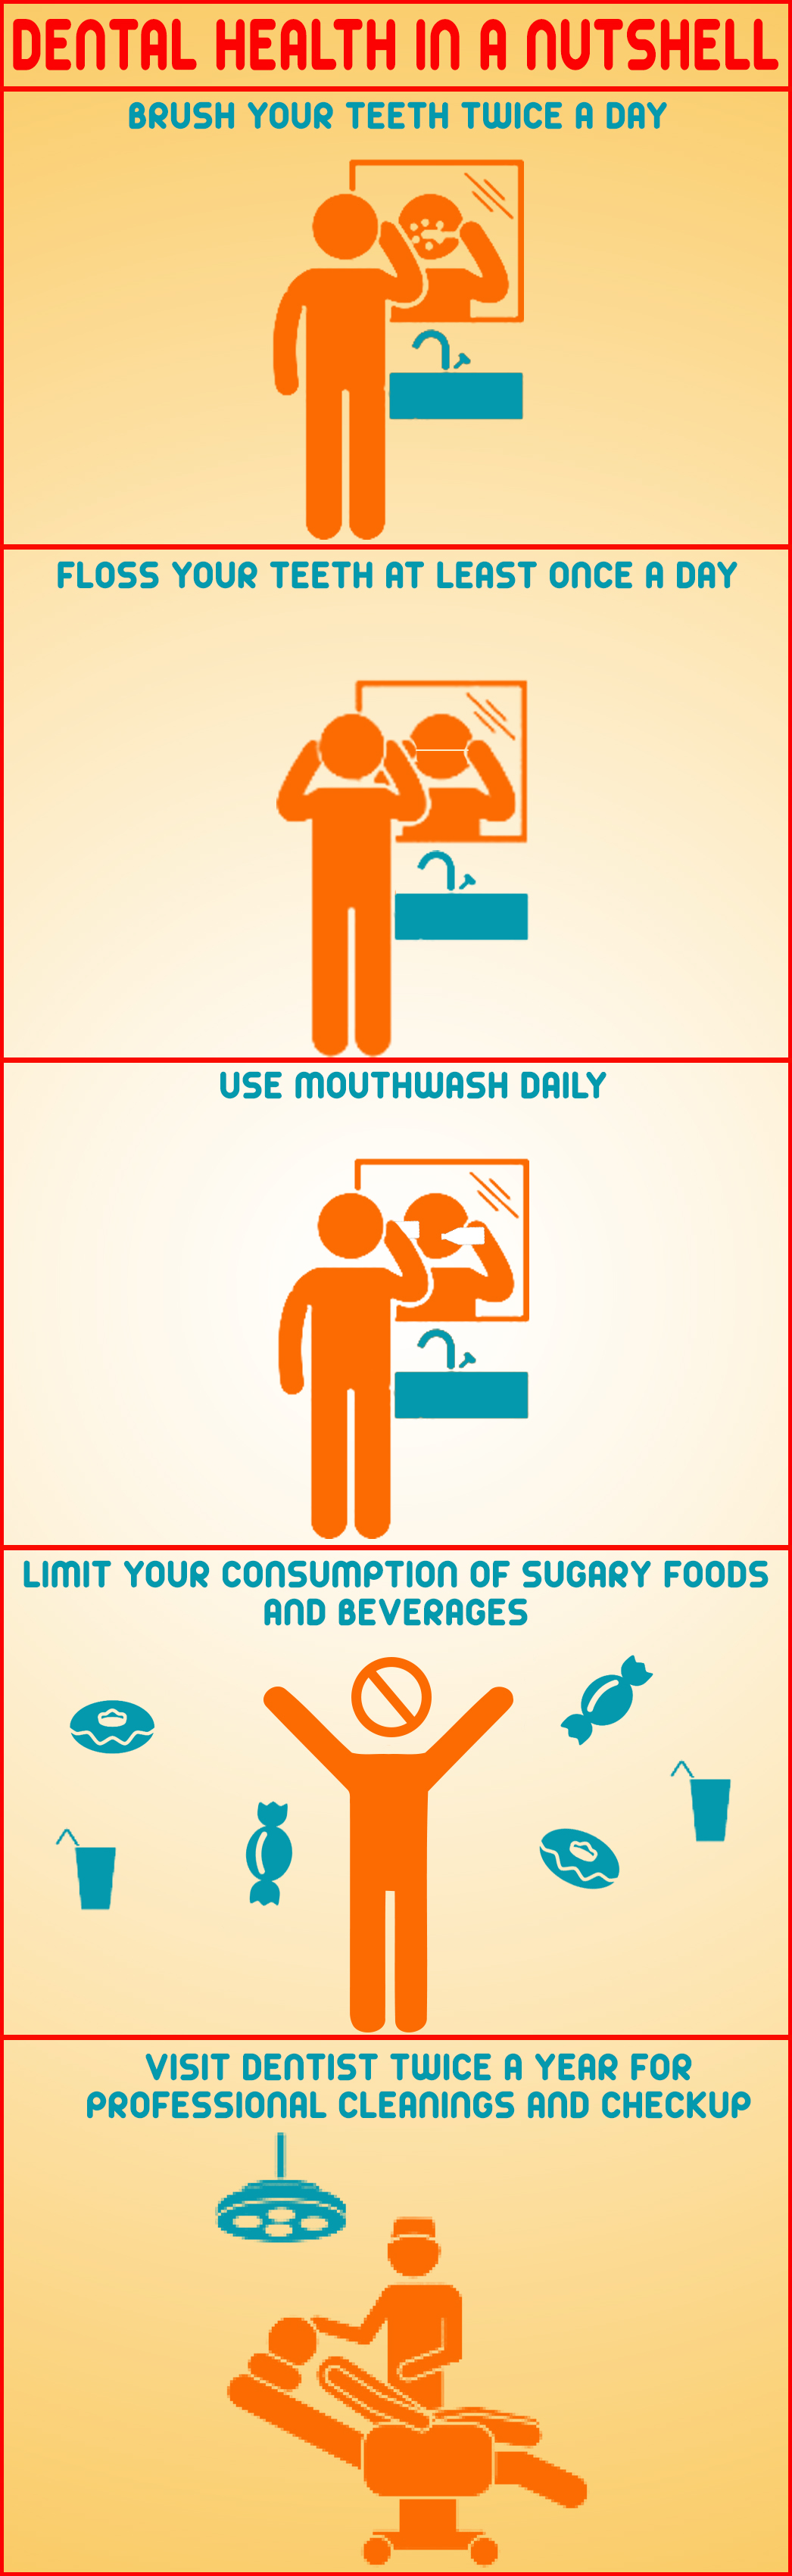 A Miami Dentist recommended steps to dental health.